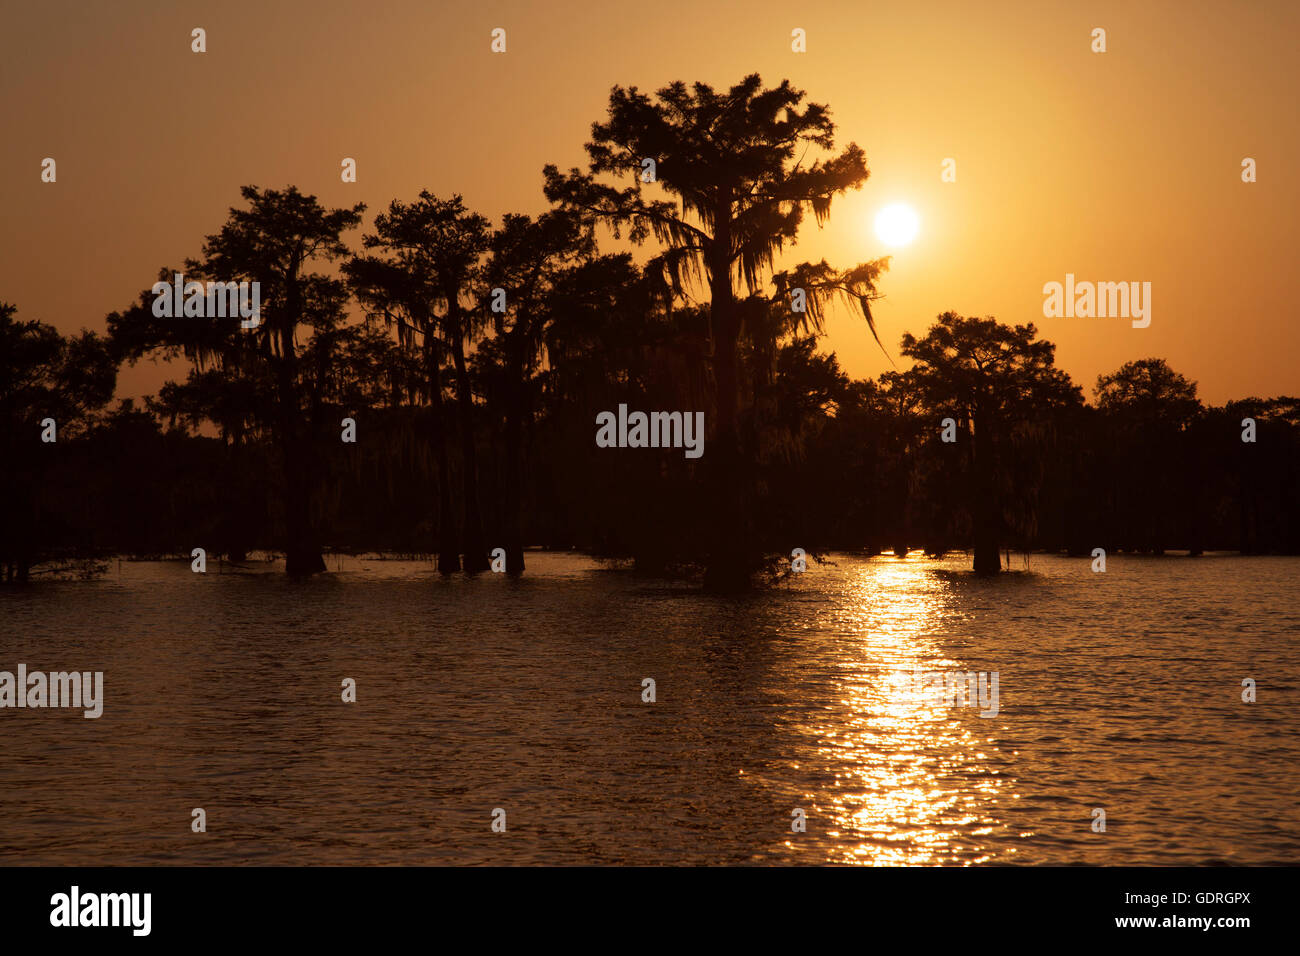 Bald cypress (Taxodium distichum) trees at sunset in Atchafalaya Swamp, the largest wetland in the United States - Stock Image